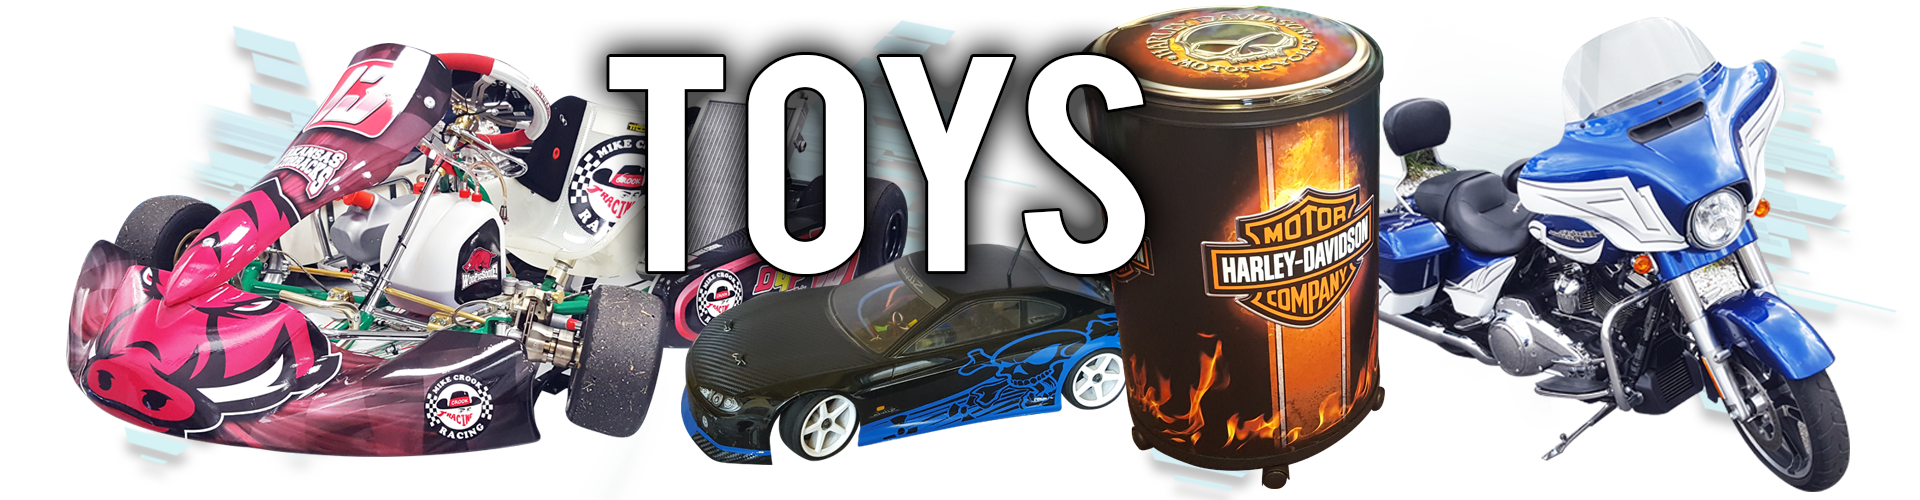 Footer_Toys